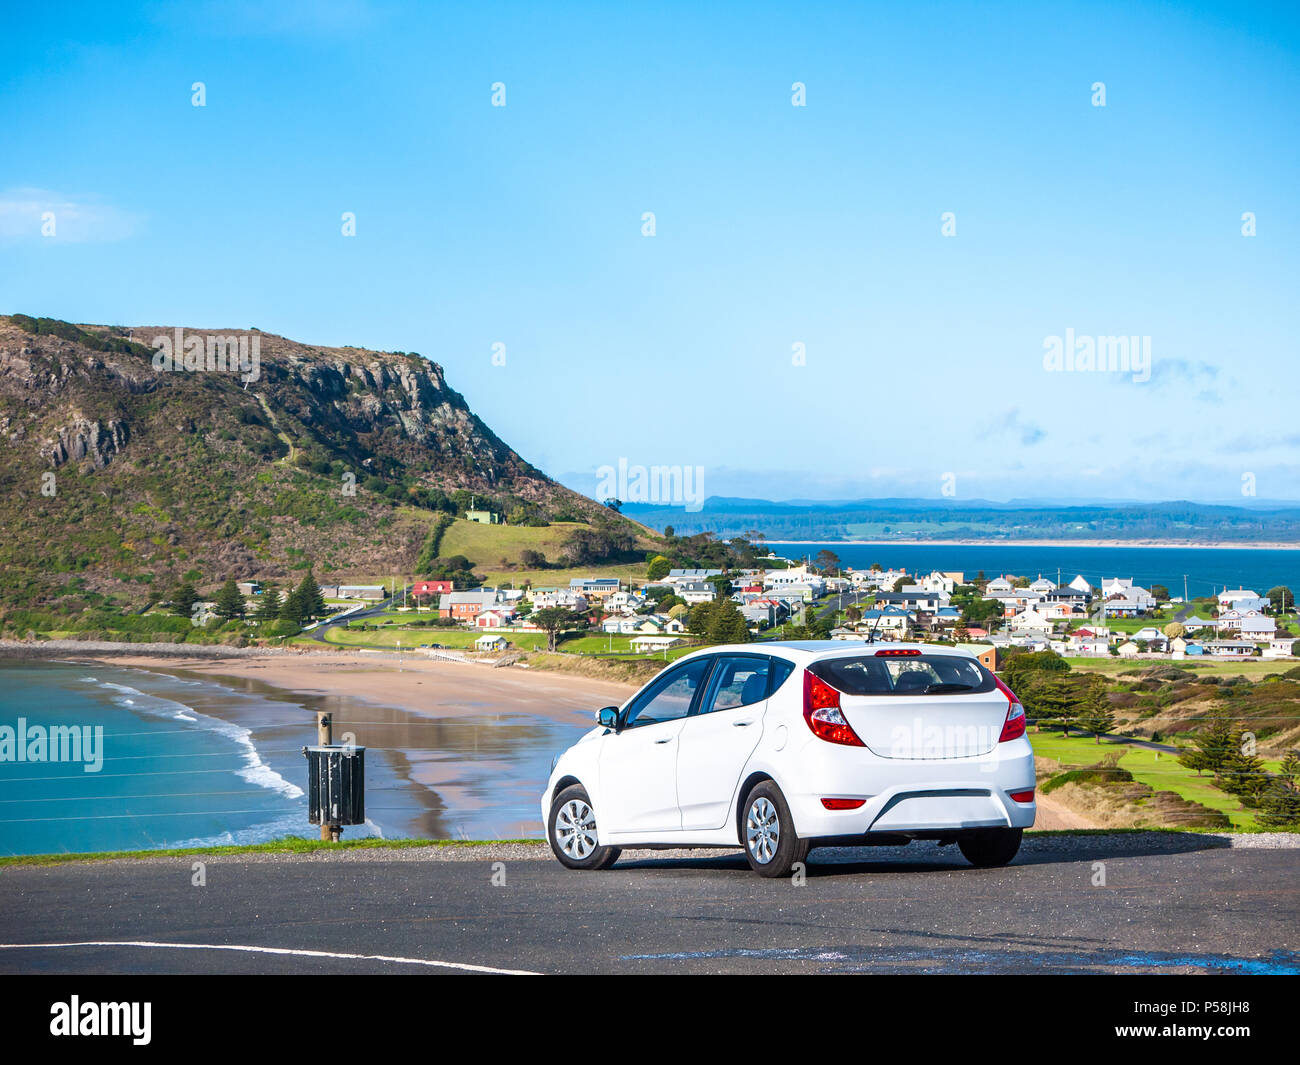 Car parked on hill with a stunning view of The Nut -- a volcanic plug in the town of Stanley at front. Stanley, Tasmania, Australia - Stock Image